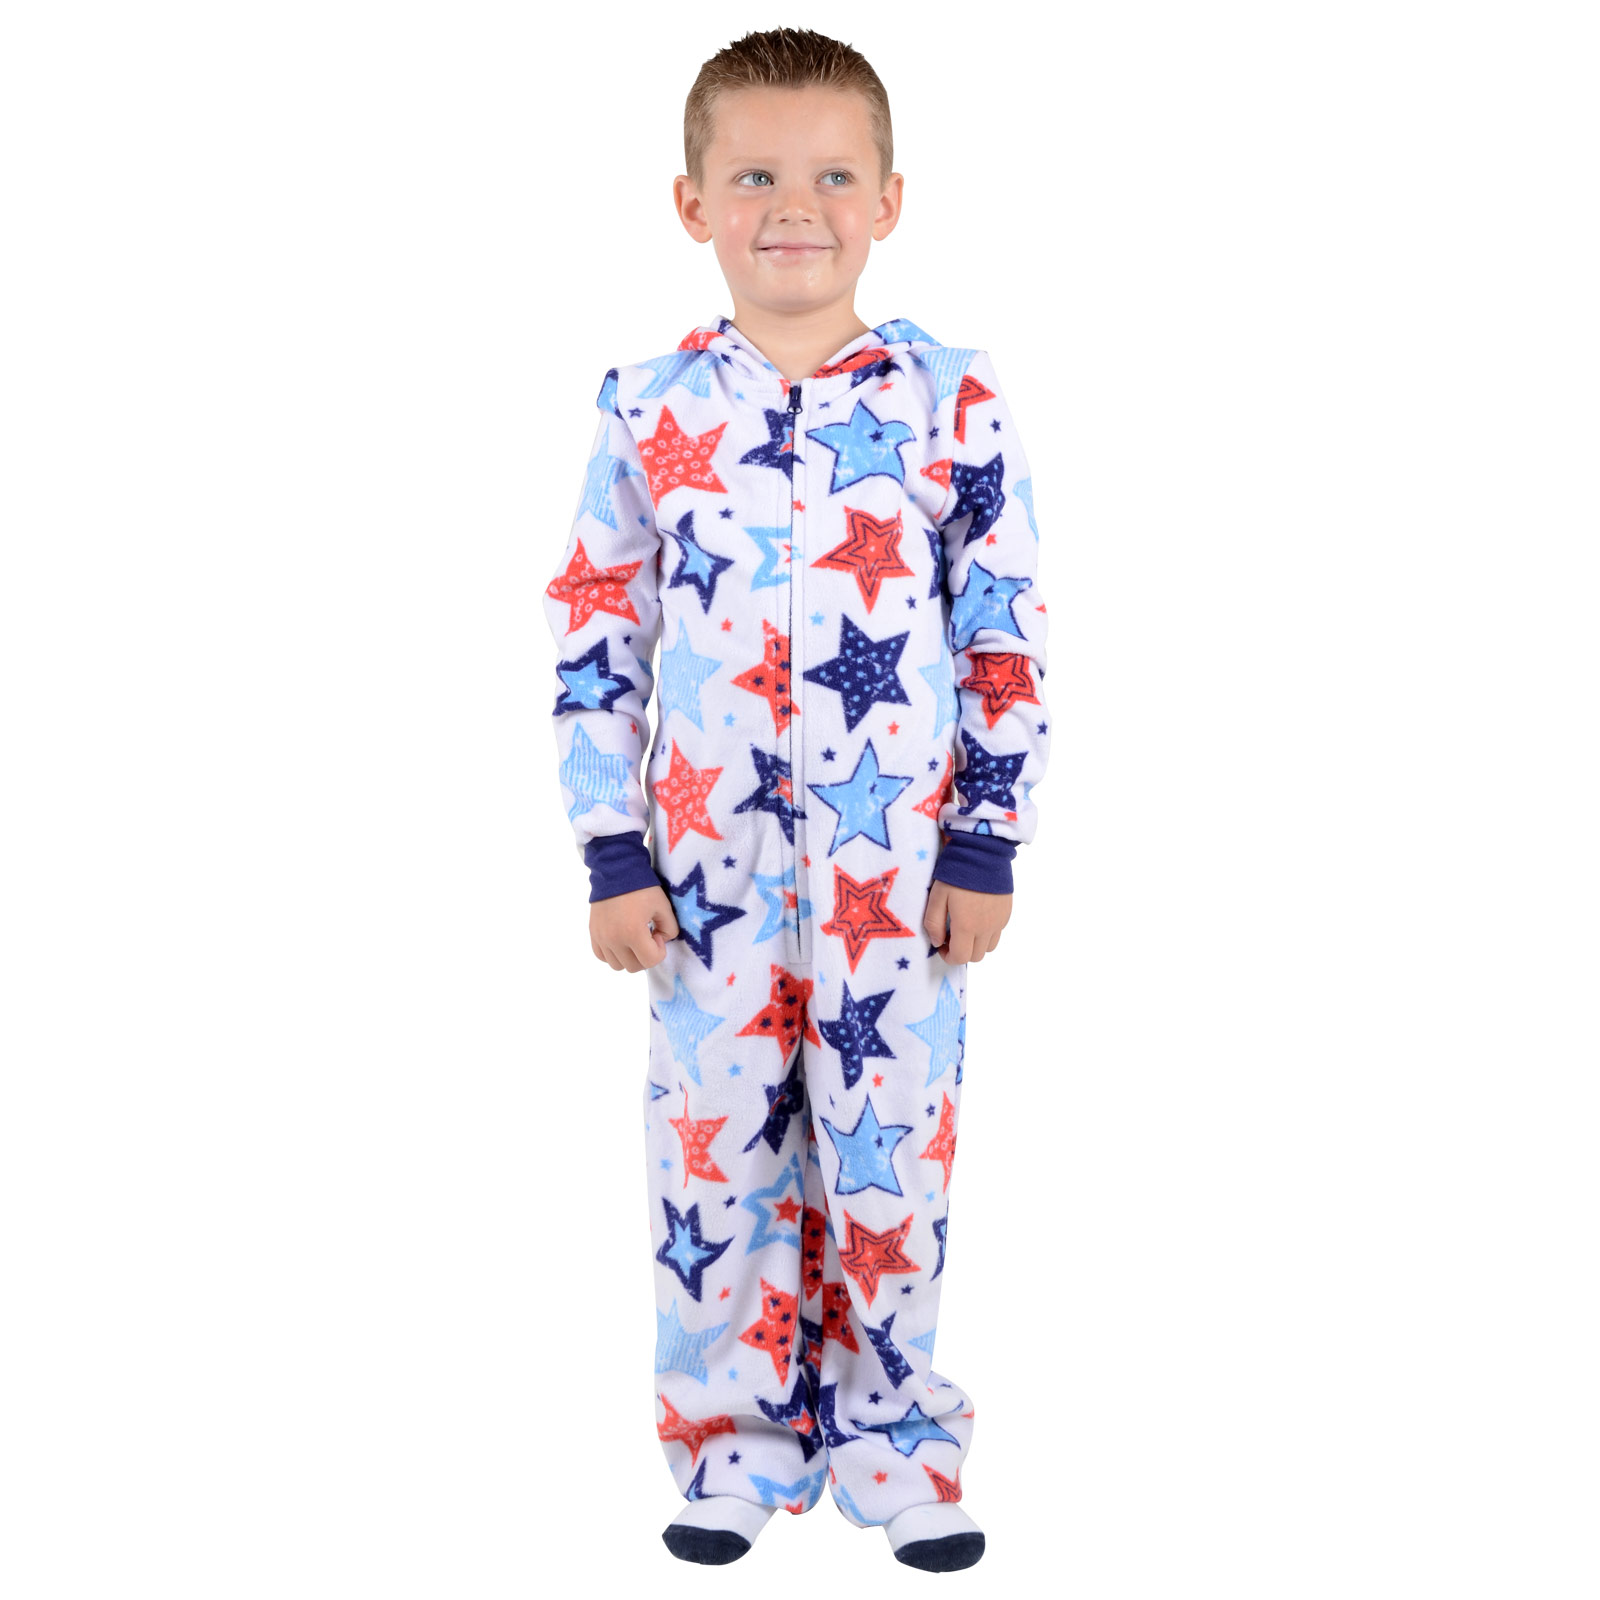 2, results for boys all in one pyjamas Save boys all in one pyjamas to get e-mail alerts and updates on your eBay Feed. Unfollow boys all in one pyjamas to stop getting updates on your eBay feed.